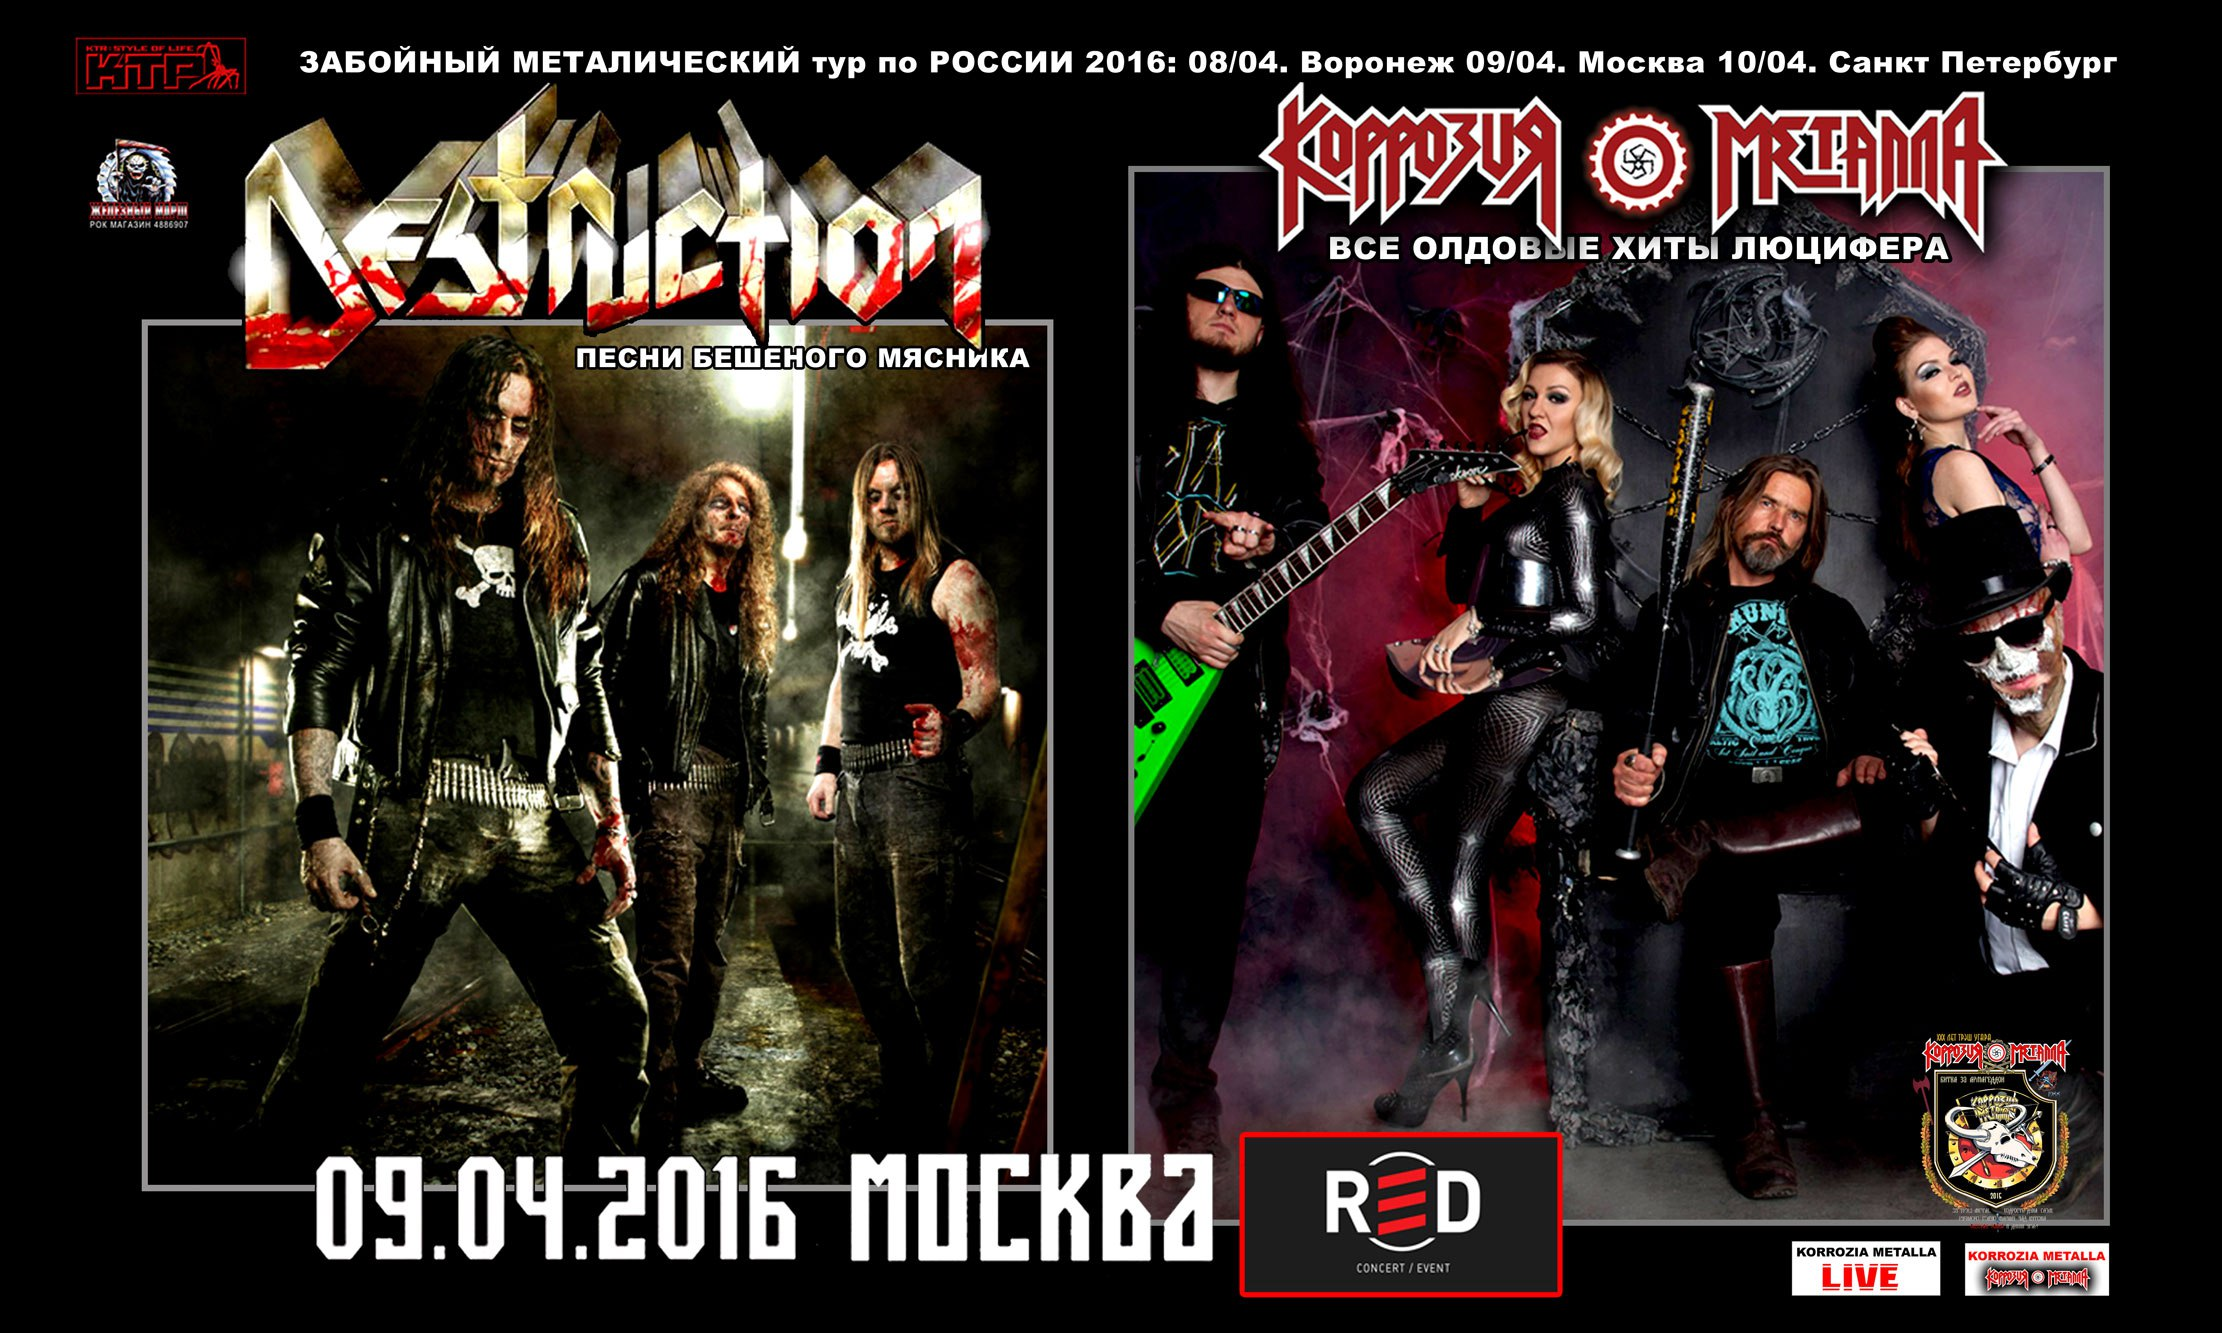 DESTRUCTION + КОРРОЗИЯ МЕТАЛЛА metal тур по РОССИИ 2016